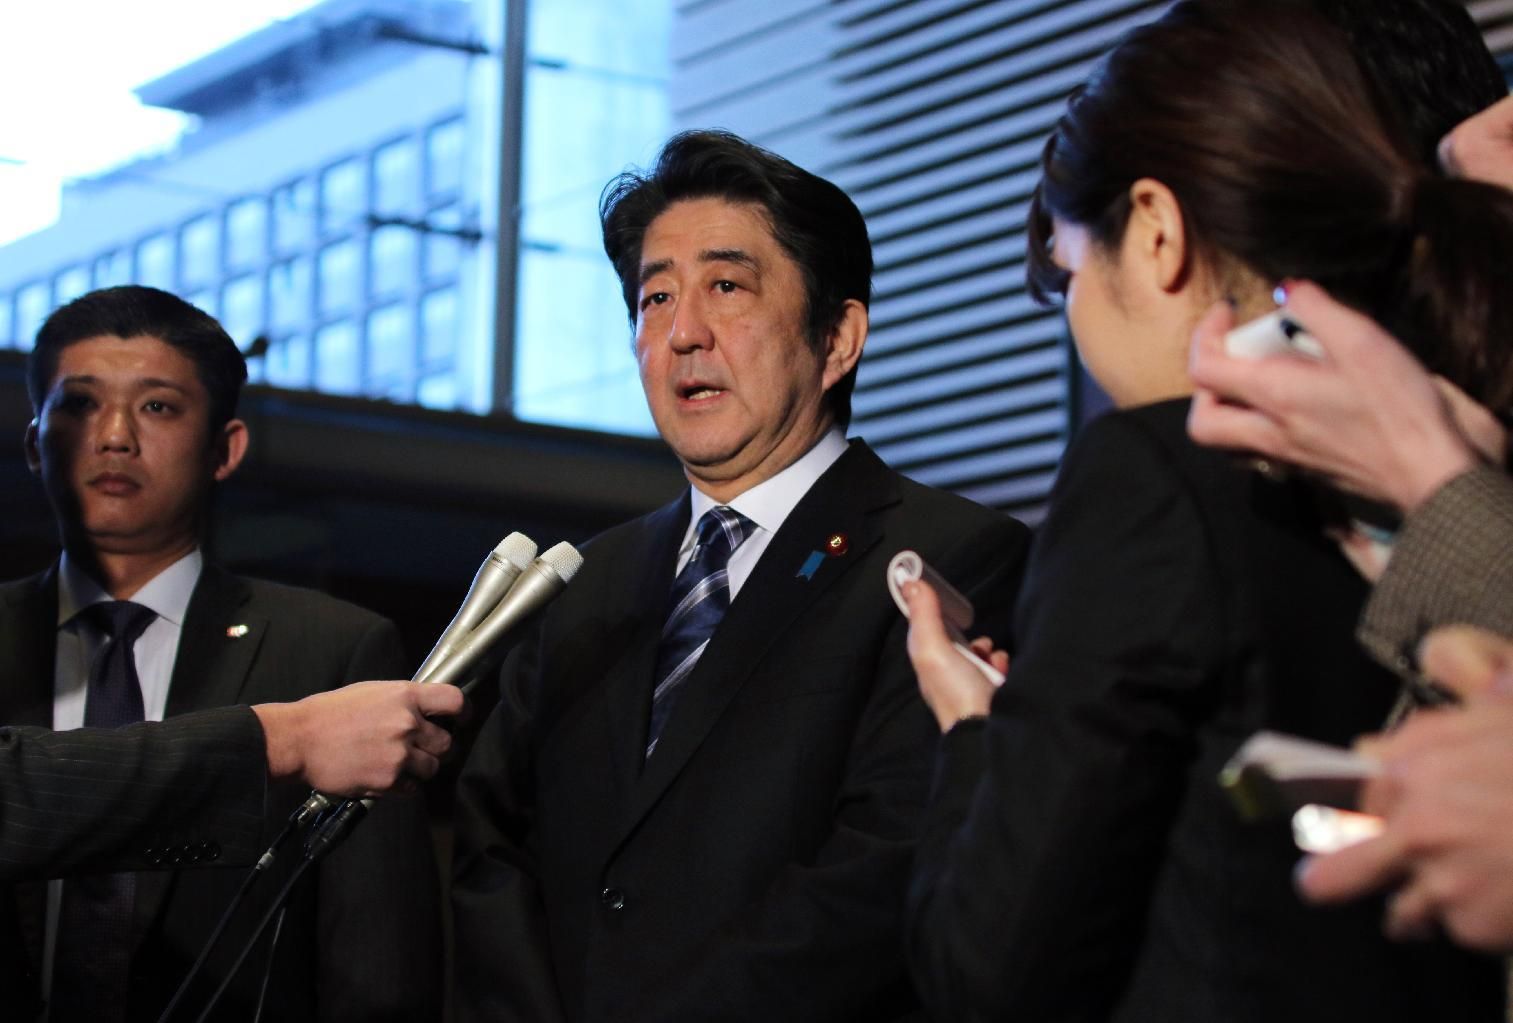 Japanese Prime Minister Shinzo Abe speaks to reporters at his official residence in Tokyo on February 1, 2015 (AFP Photo/Yoshikazu Tsuno)